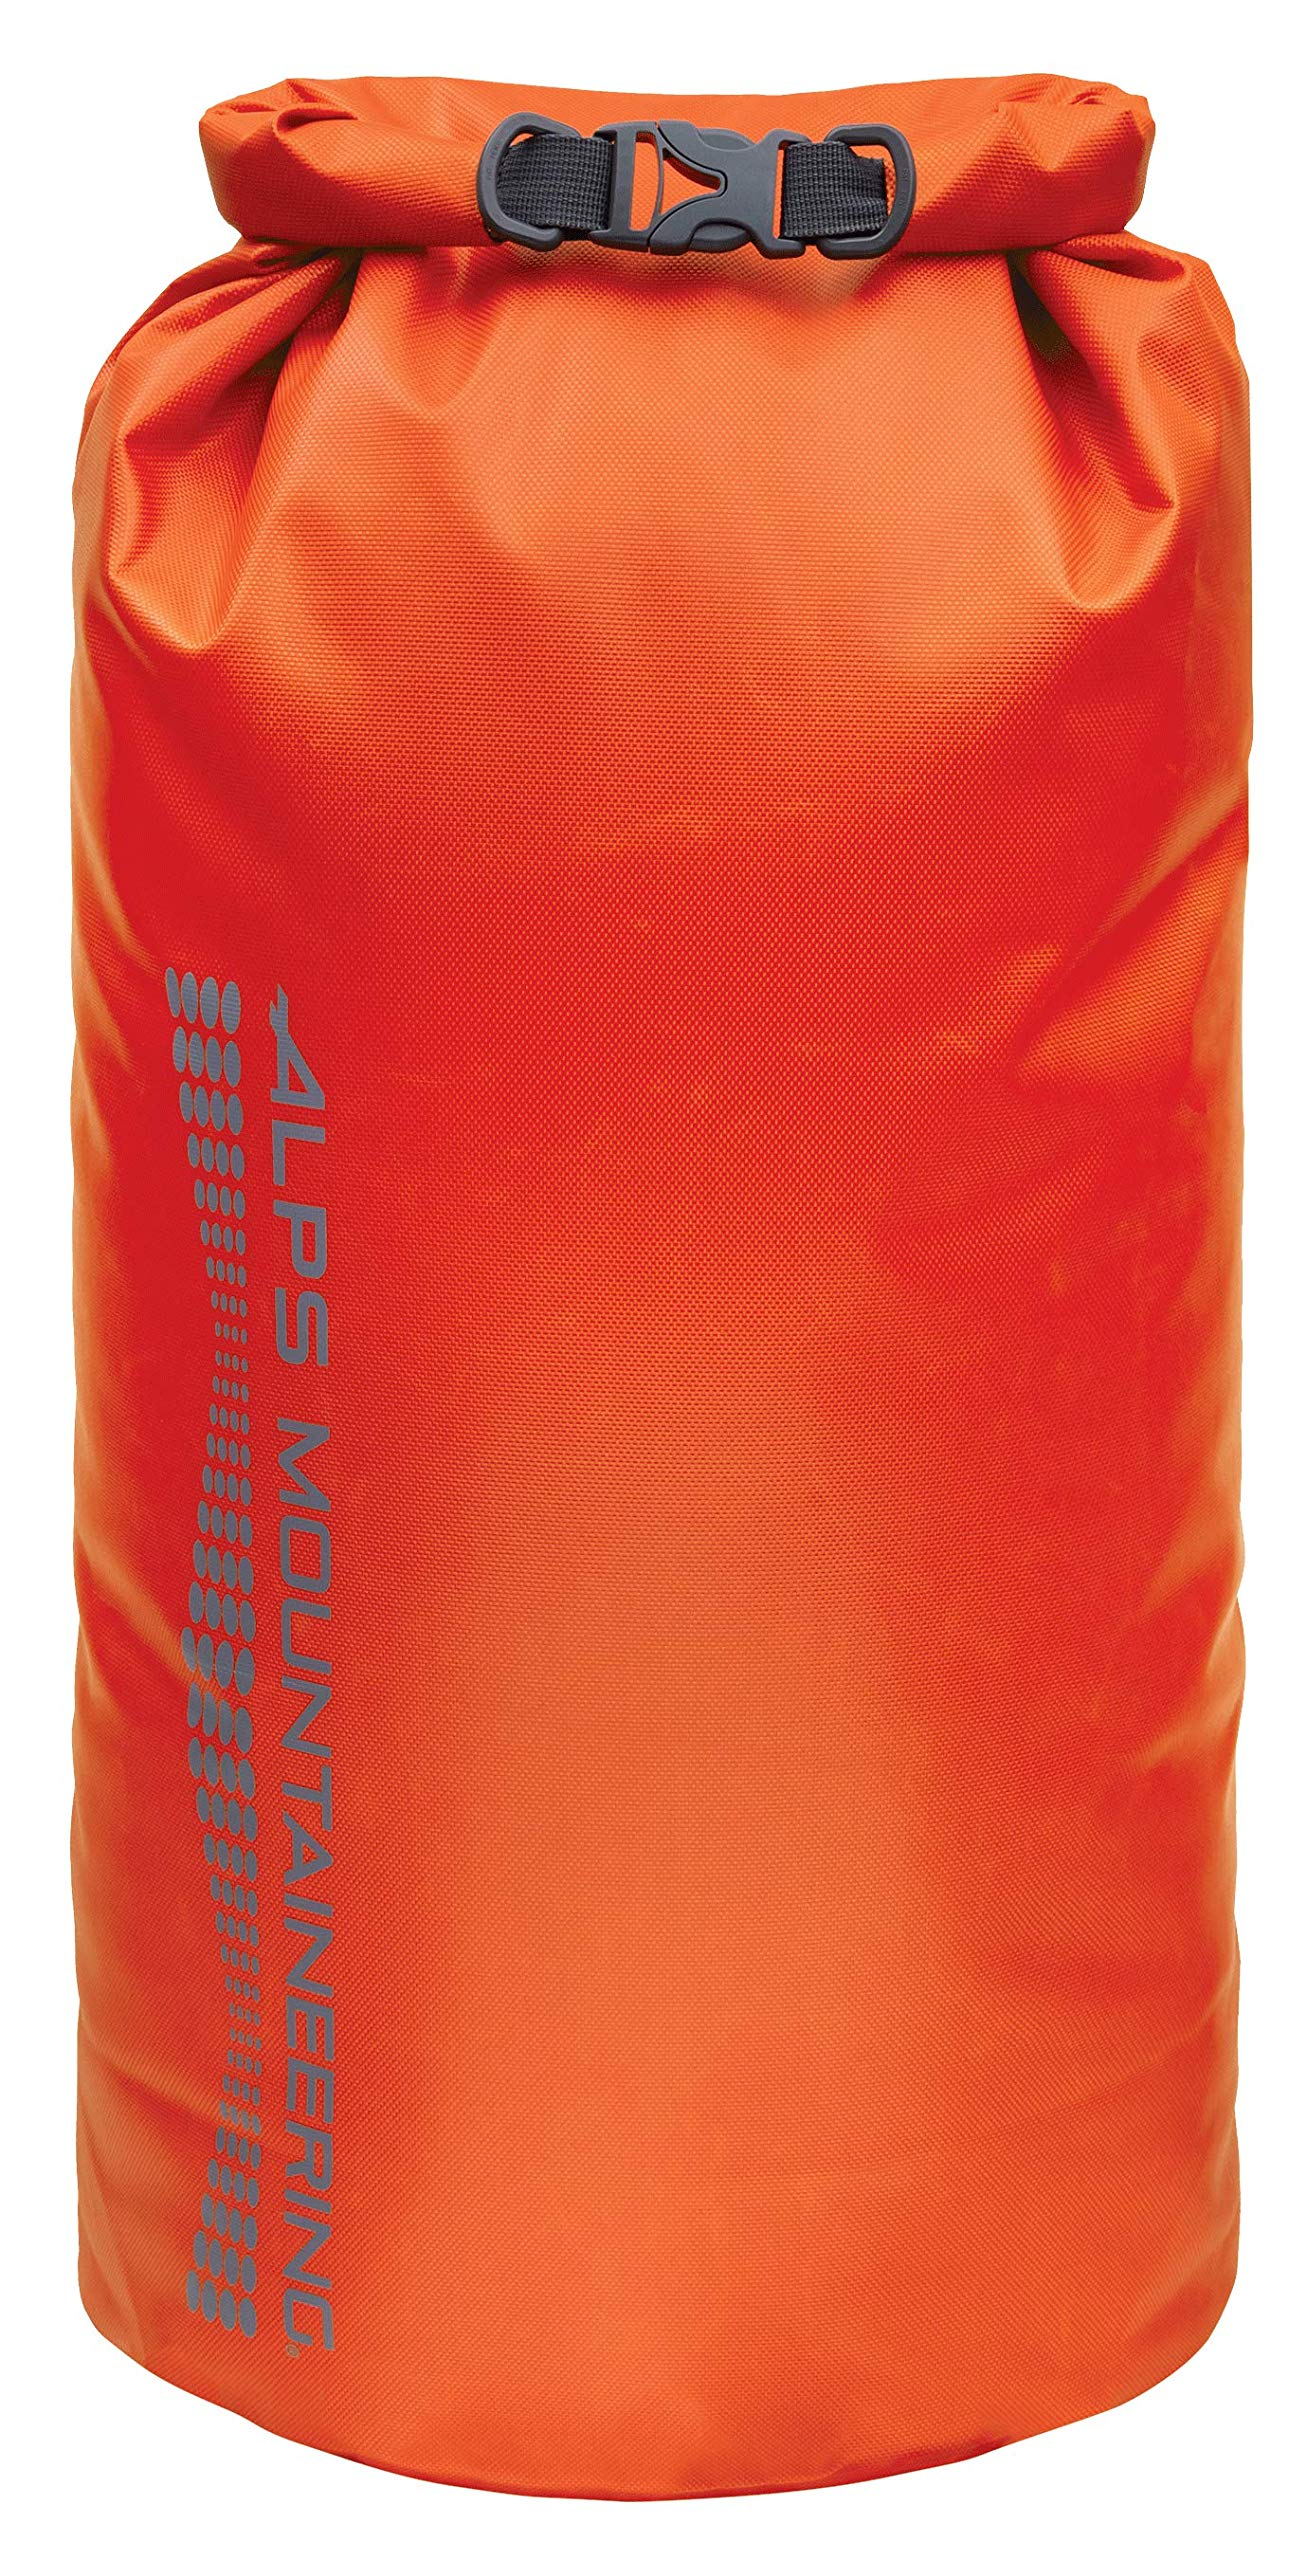 ALPS Mountaineering Torrent Waterproof Dry Bag 70L, Red by ALPS Mountaineering